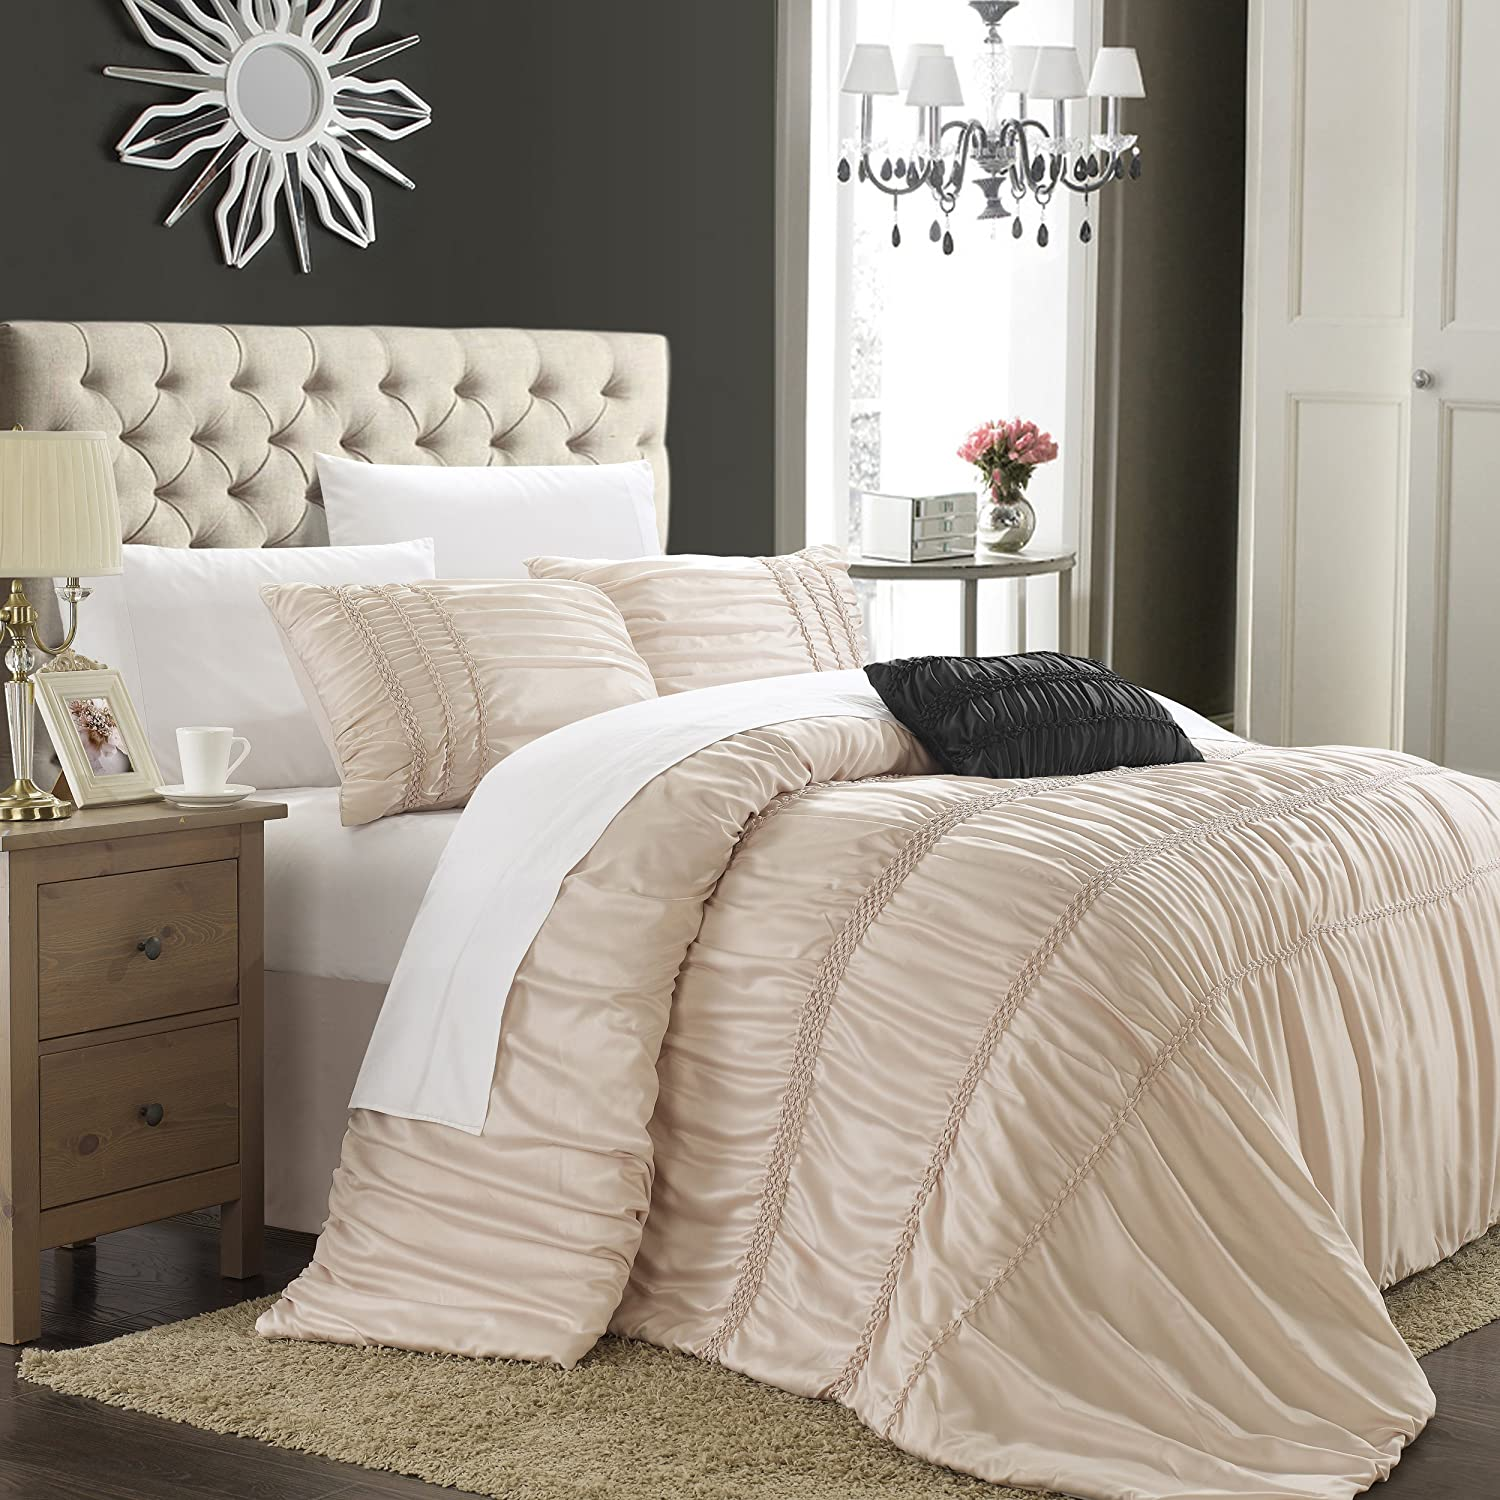 Amazon.com: Chic Home Romantica 4-Piece Duvet Cover Set, Queen ...